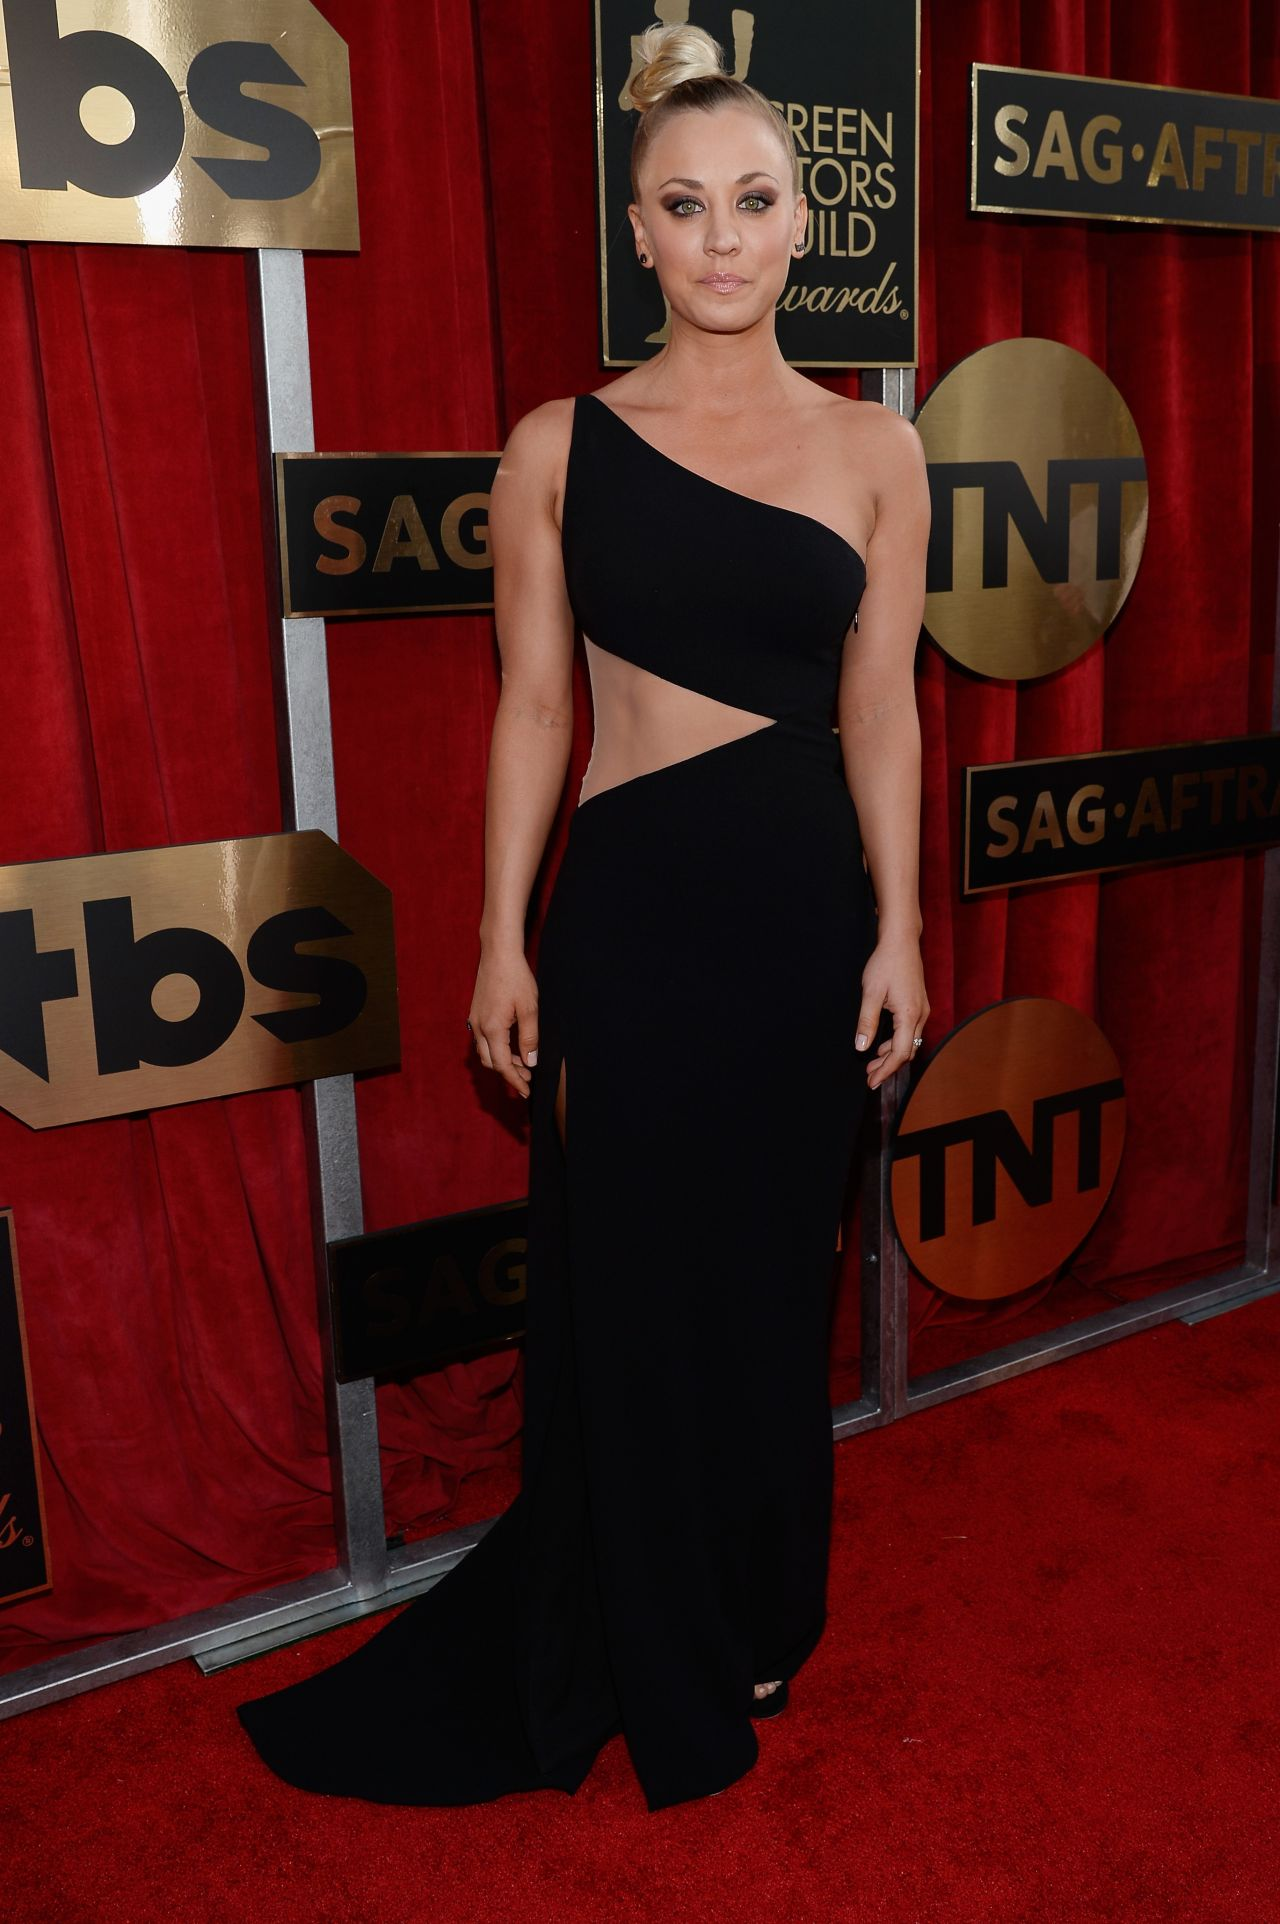 kaley-cuoco-sag-awards-2016-at-shrine-auditorium-in-los-angeles-1